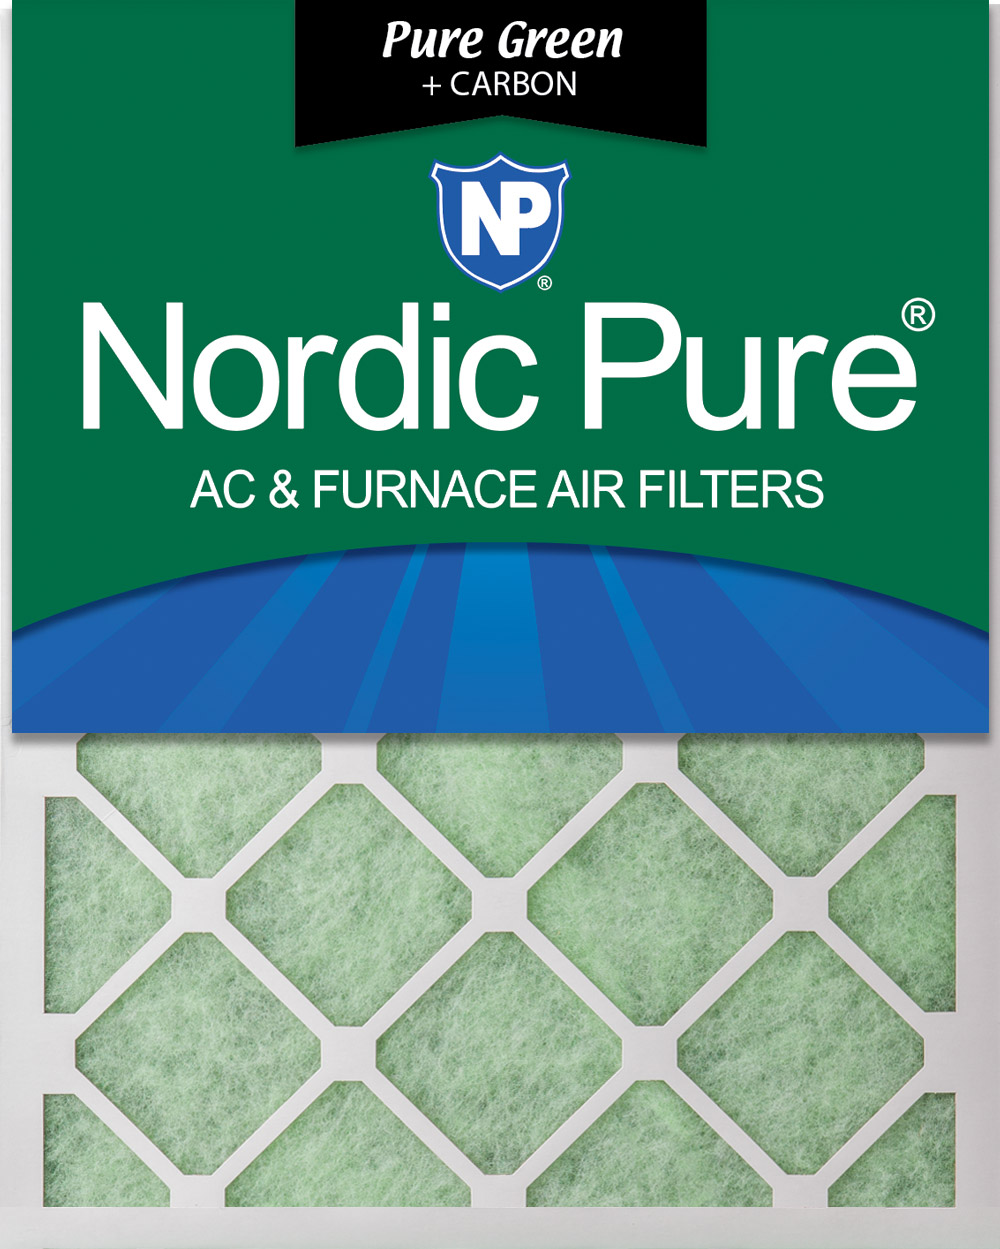 Nordic Pure 12x18x1 Pure Green Plus Carbon Eco-Friendly AC Furnace Air Filters 3 Pack 3 Piece